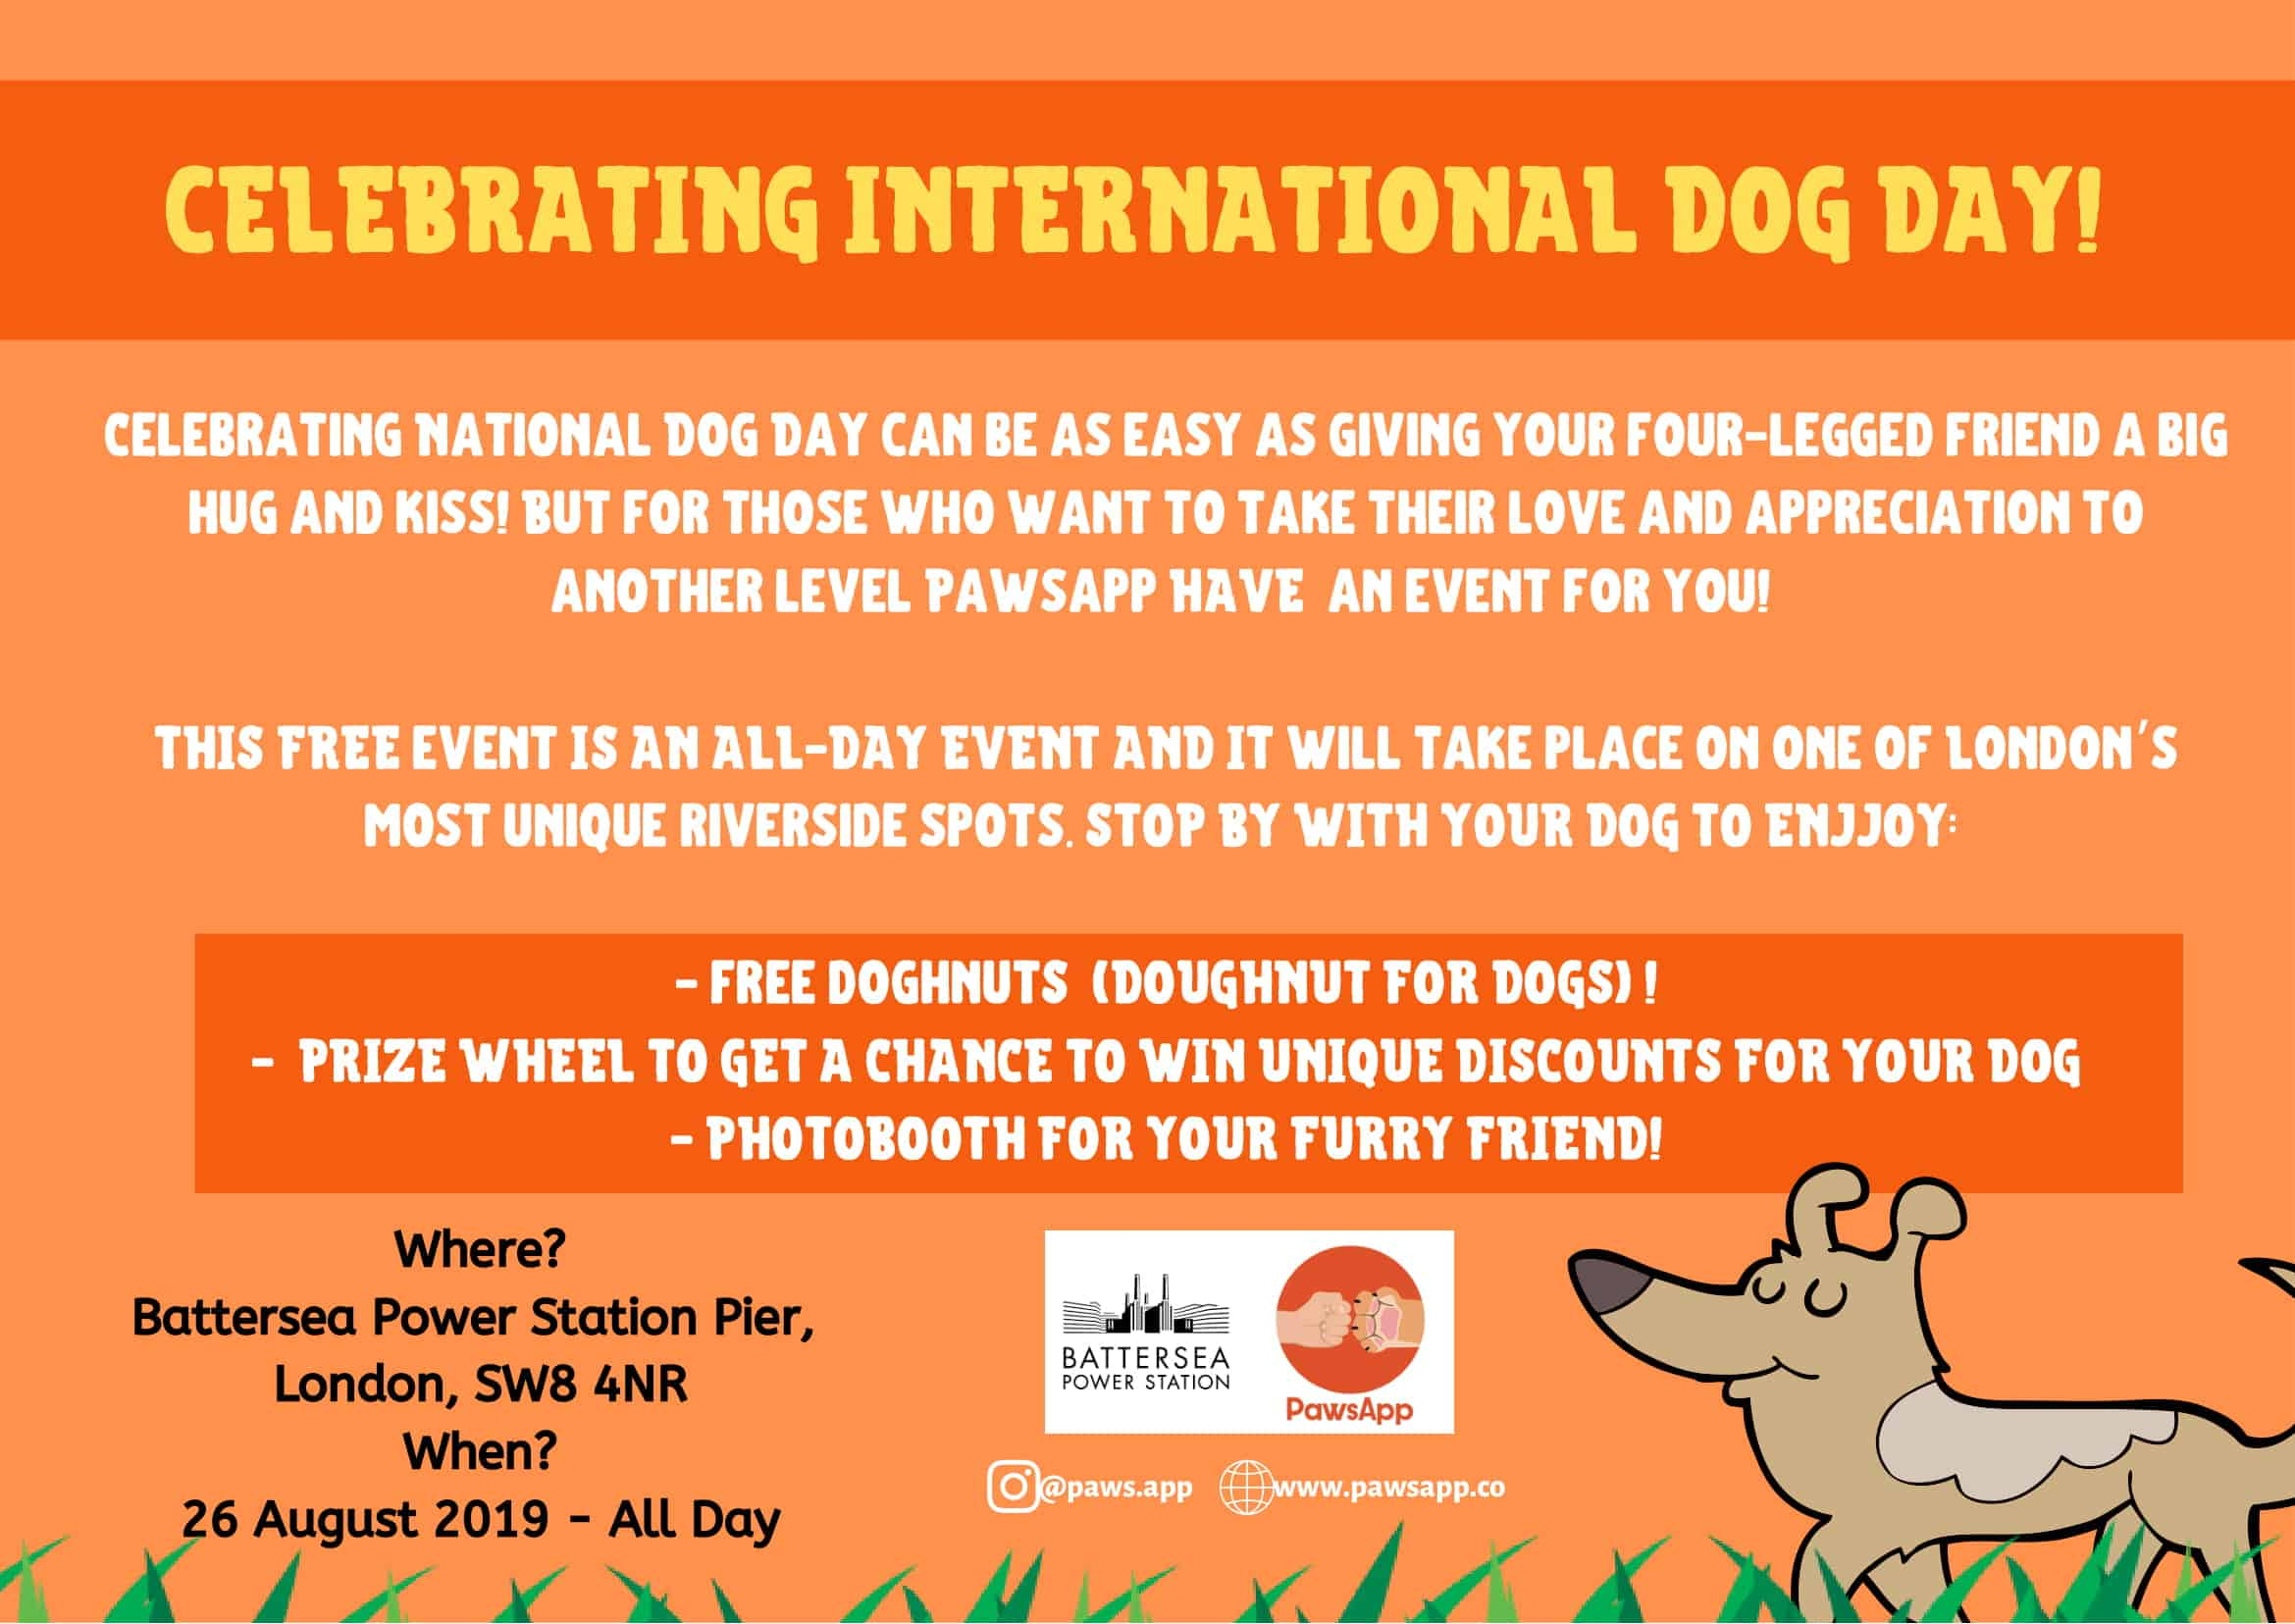 National Dog Day with Pawsapp at Battersea Power Station